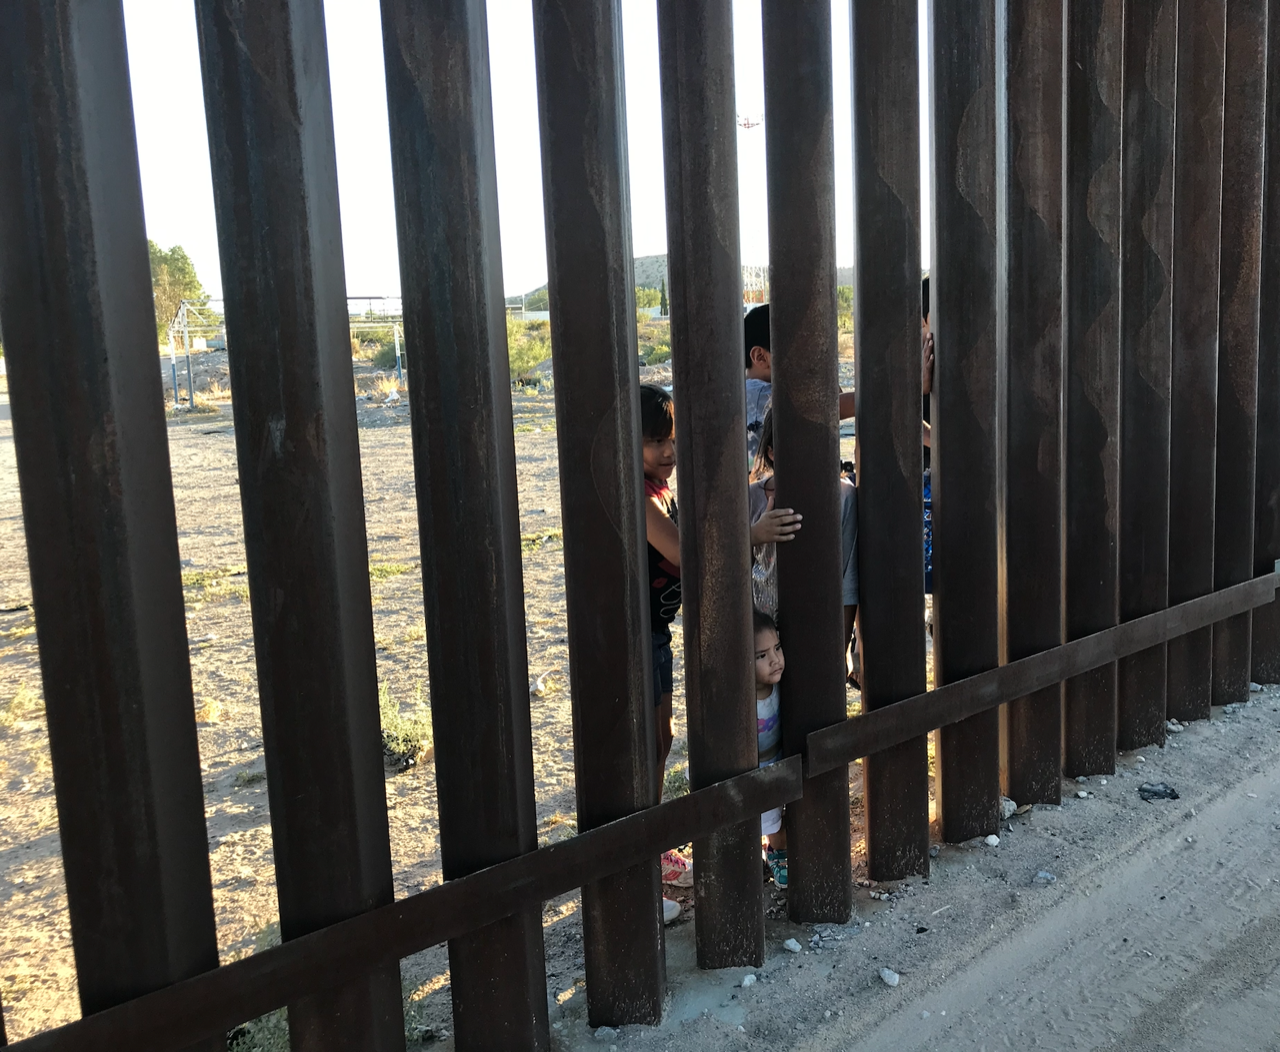 Kids at the border wall, Anapra, New Mexico / Puerto de Anapra, Chihuahua